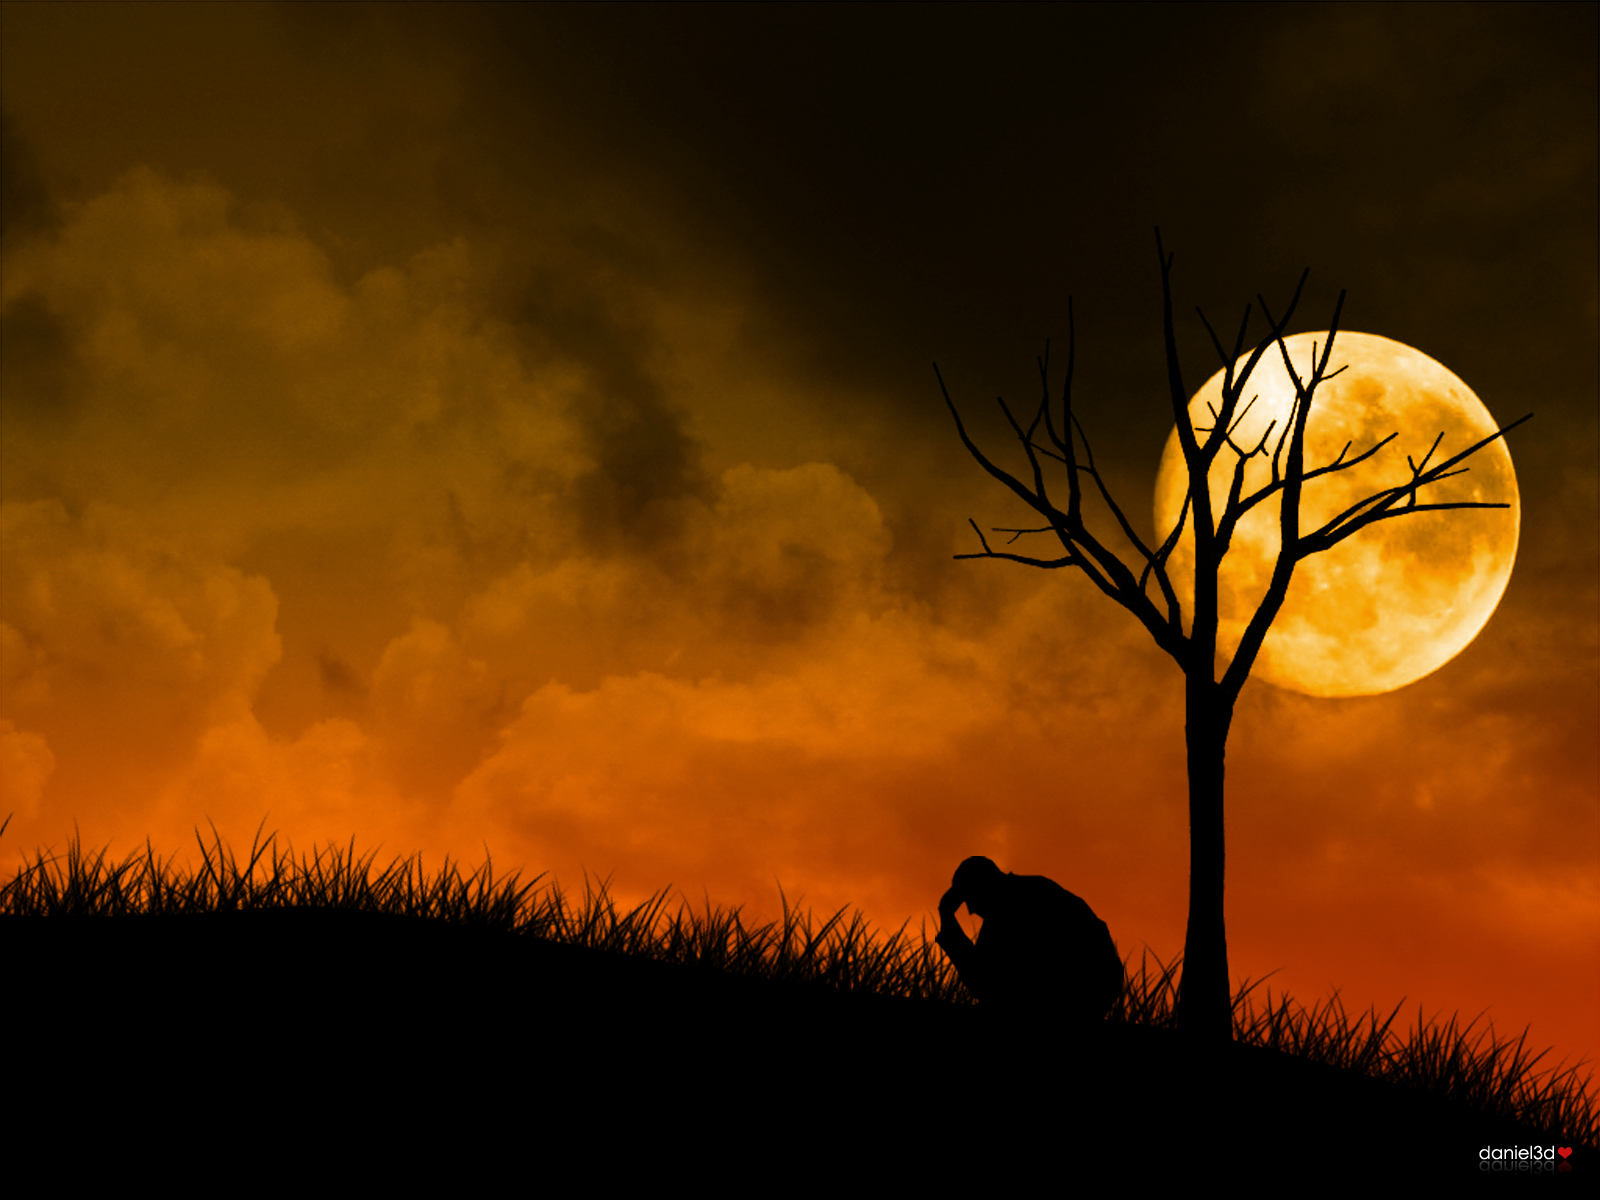 best sad wallpapers 2011 - photo #18